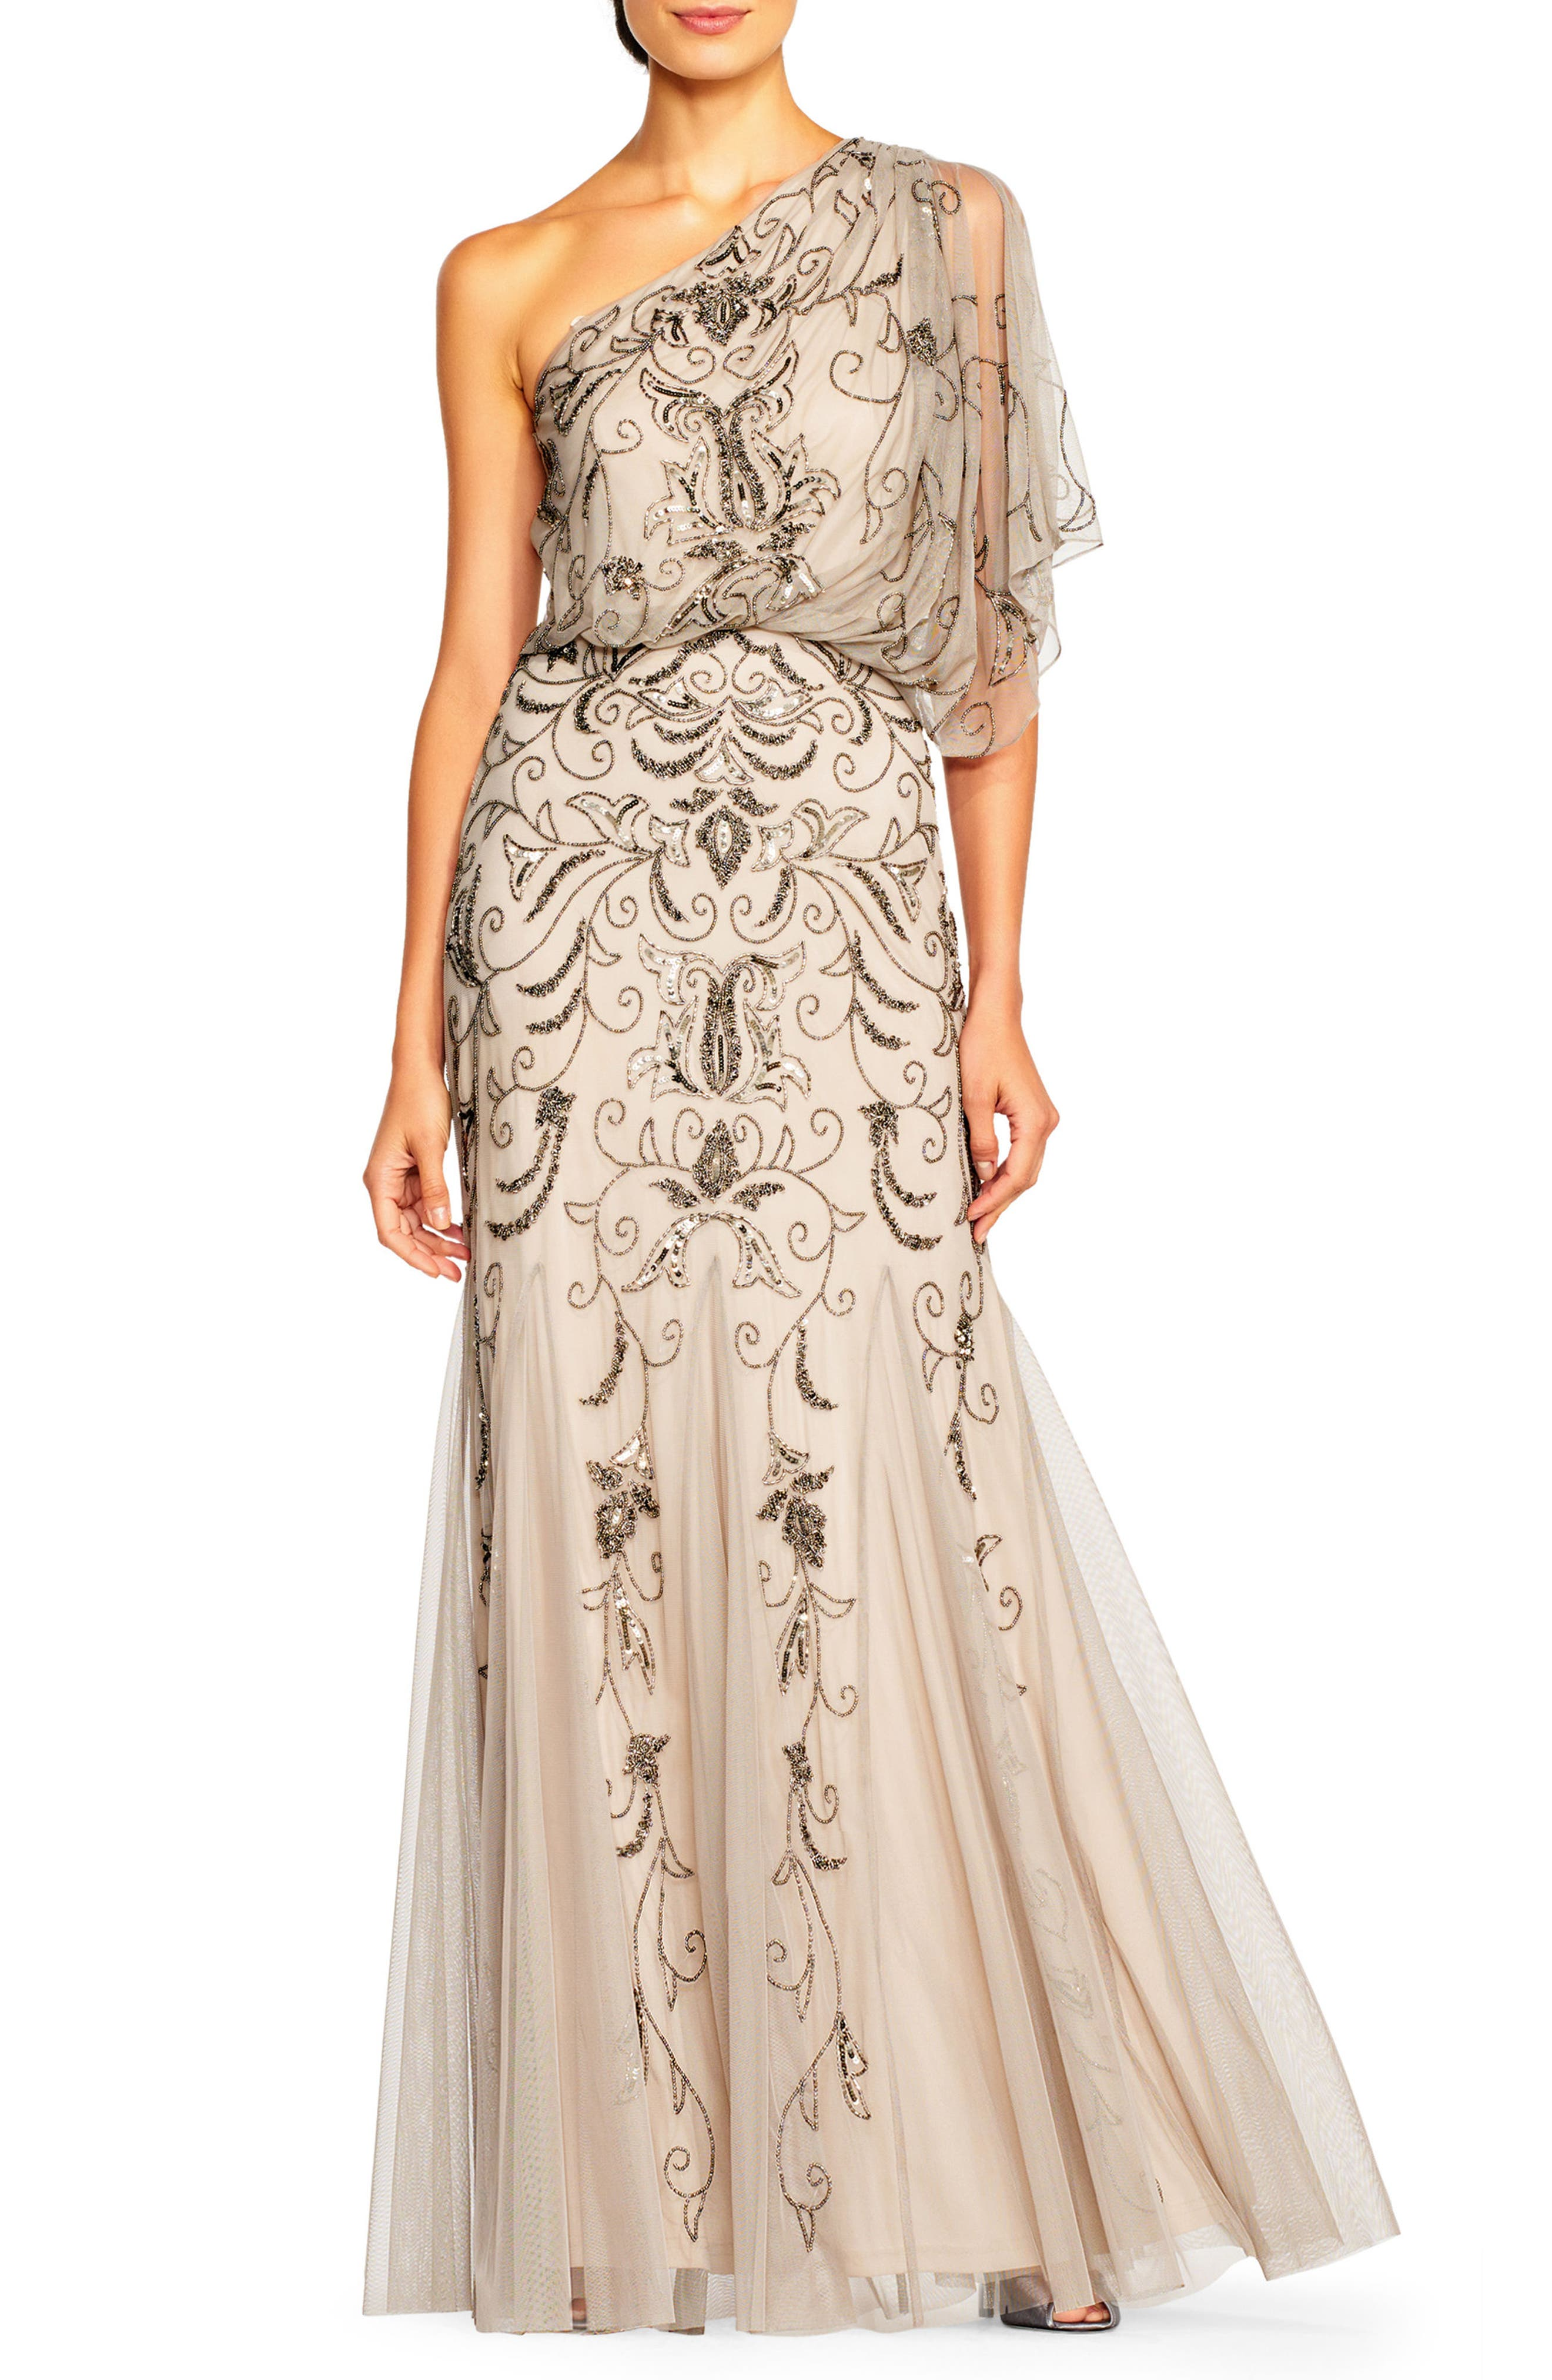 Alternate Image 1 Selected - Adrianna Papell Beaded One-Shoulder Blouson Gown